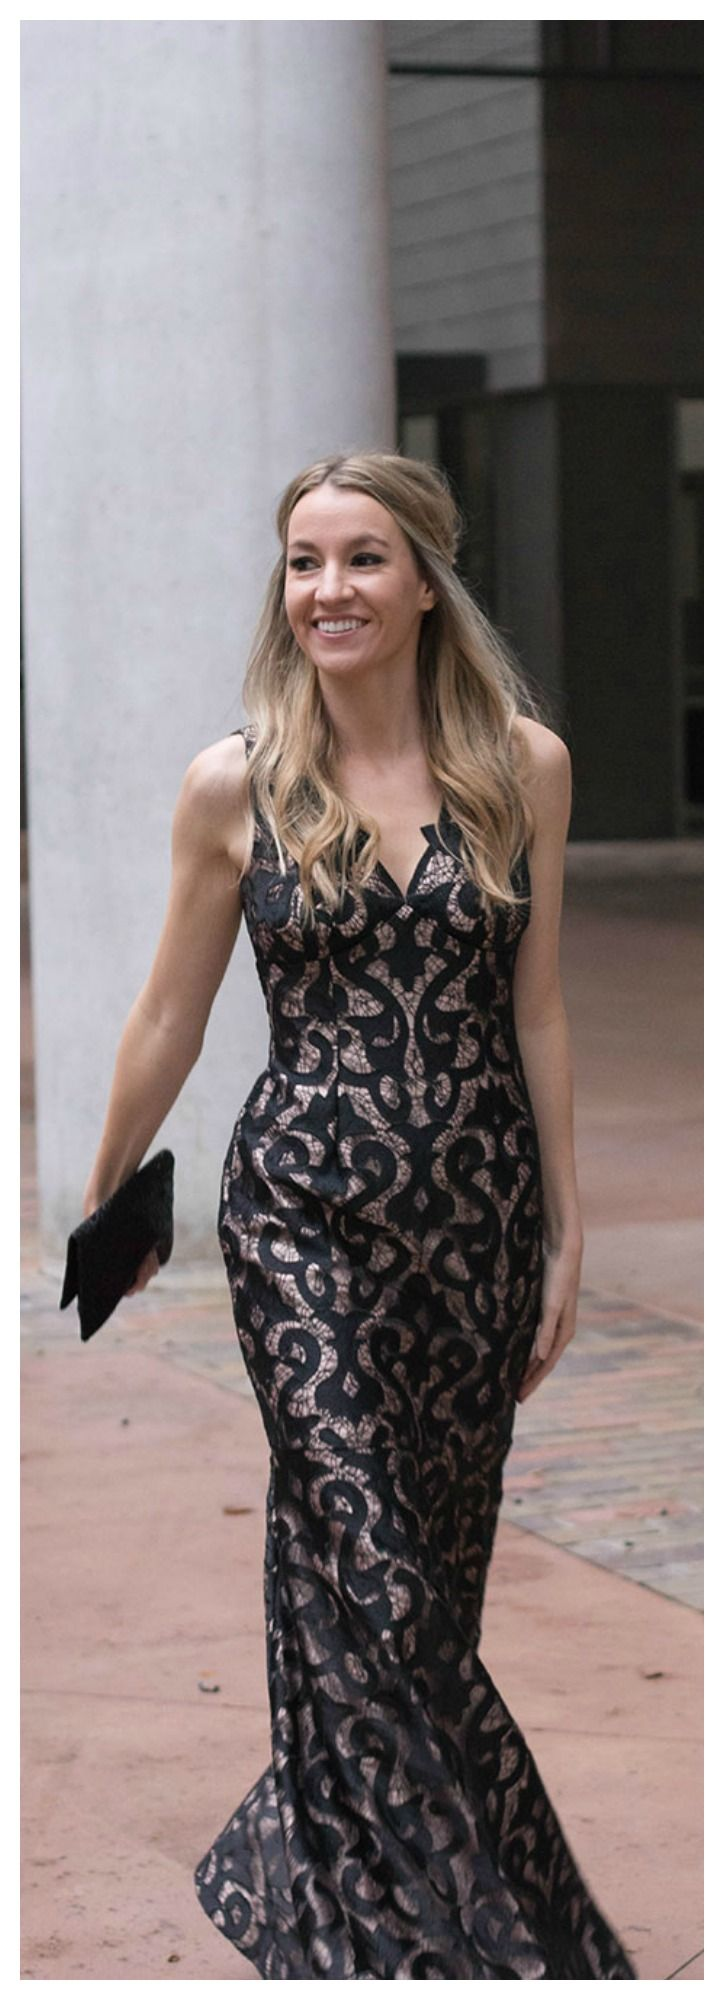 The Perfect Winter Black Tie Evening Gown This Dress Is So Comfy And For A Wedding Life By Lee